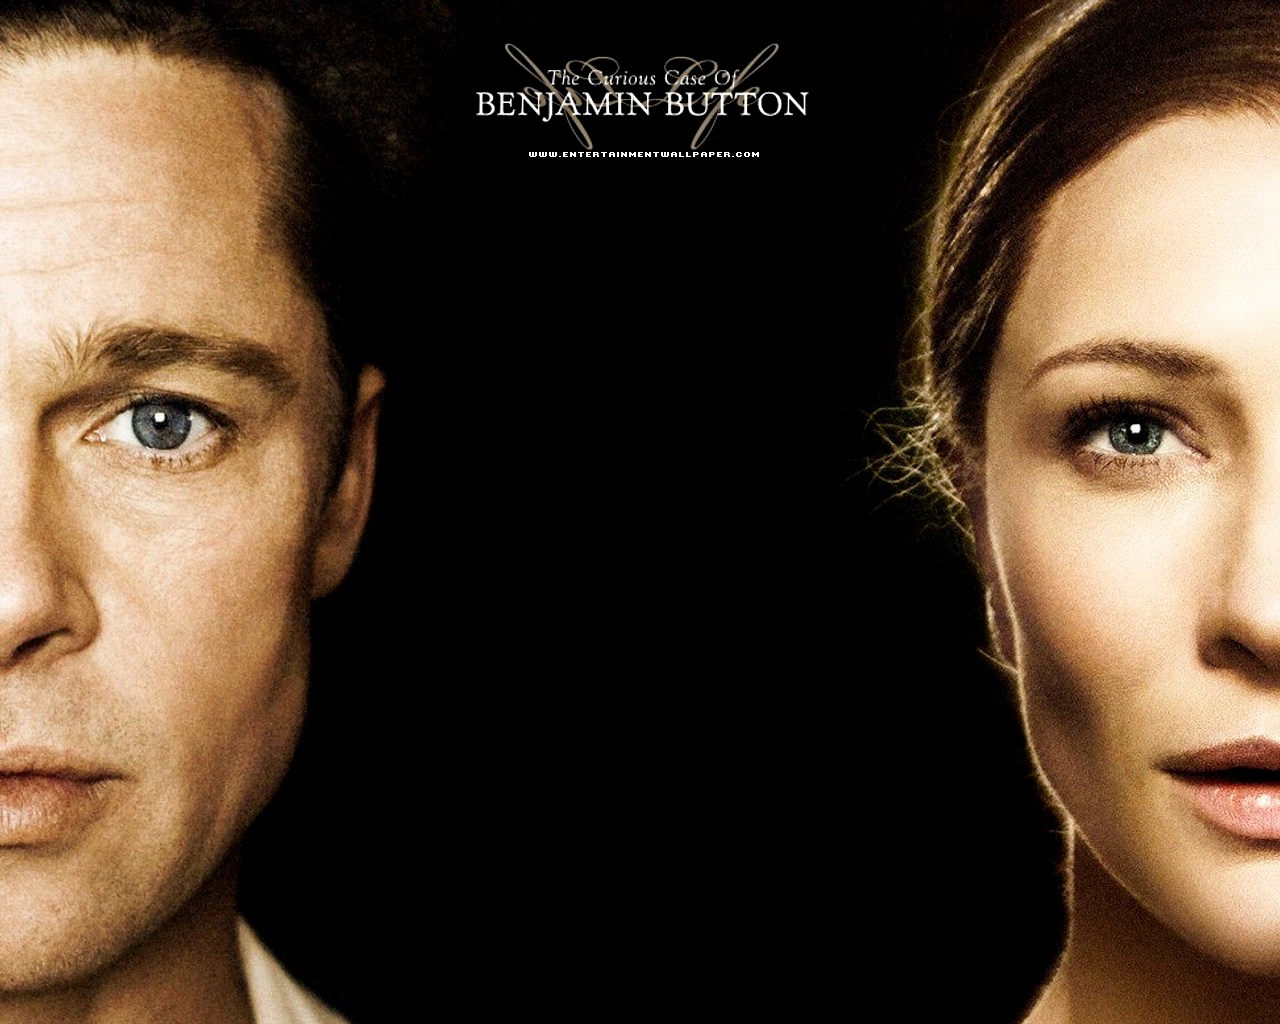 The curious case of benjamin button 2017 ost soundtrack